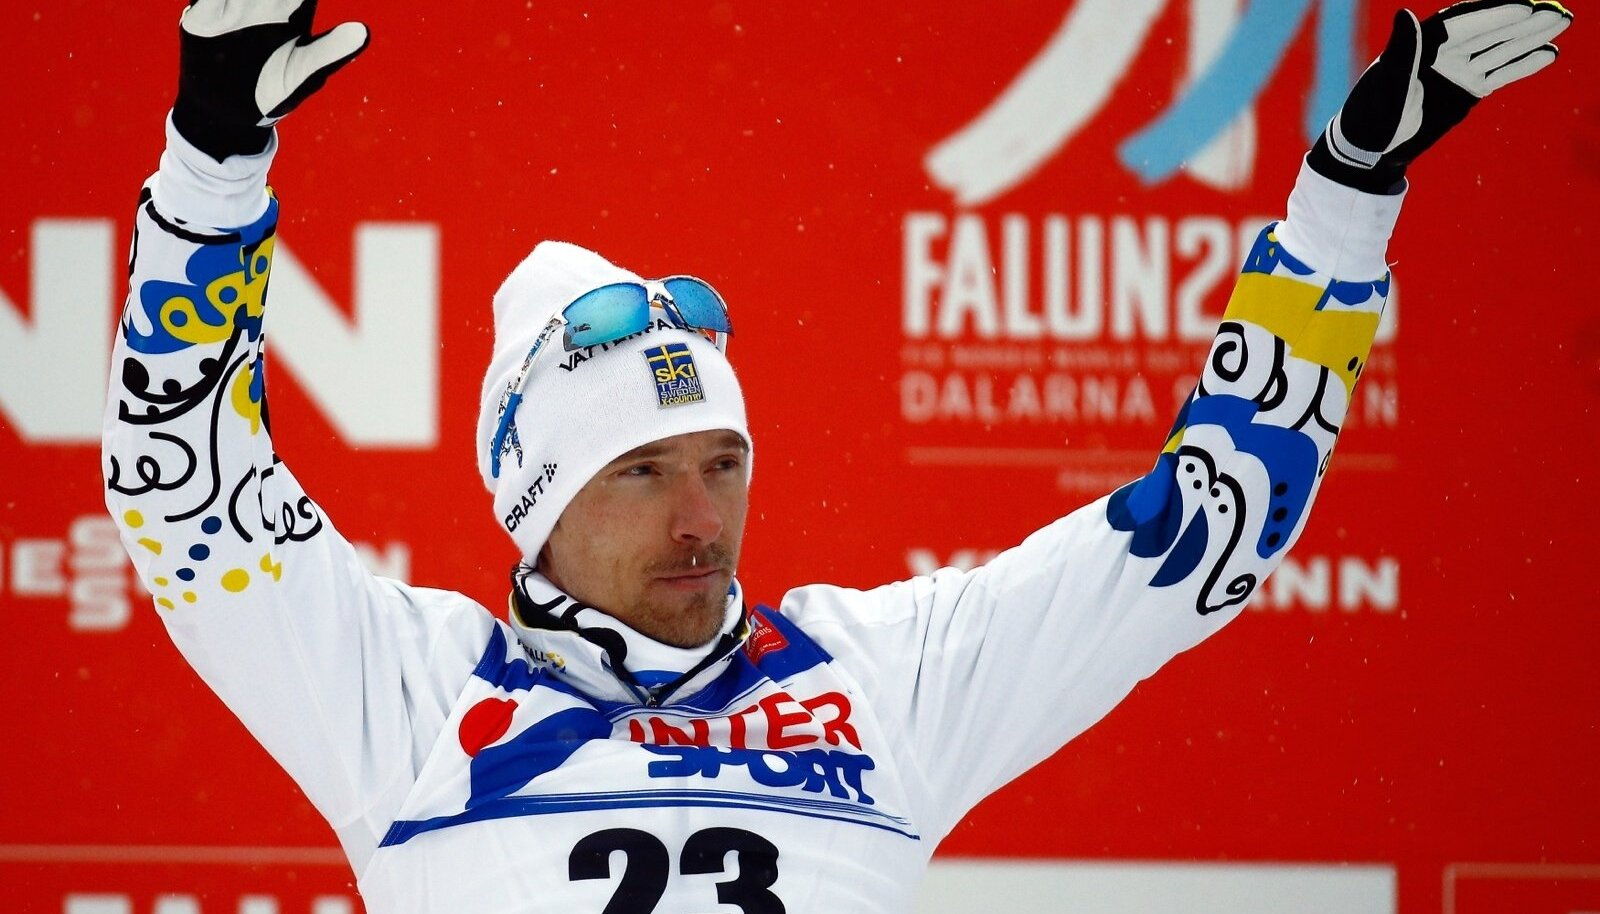 Sweden's Johan Olsson celebrates his third place in the men's cross country 50 km mass start classic race at the Nordic World Ski Championships in Falun